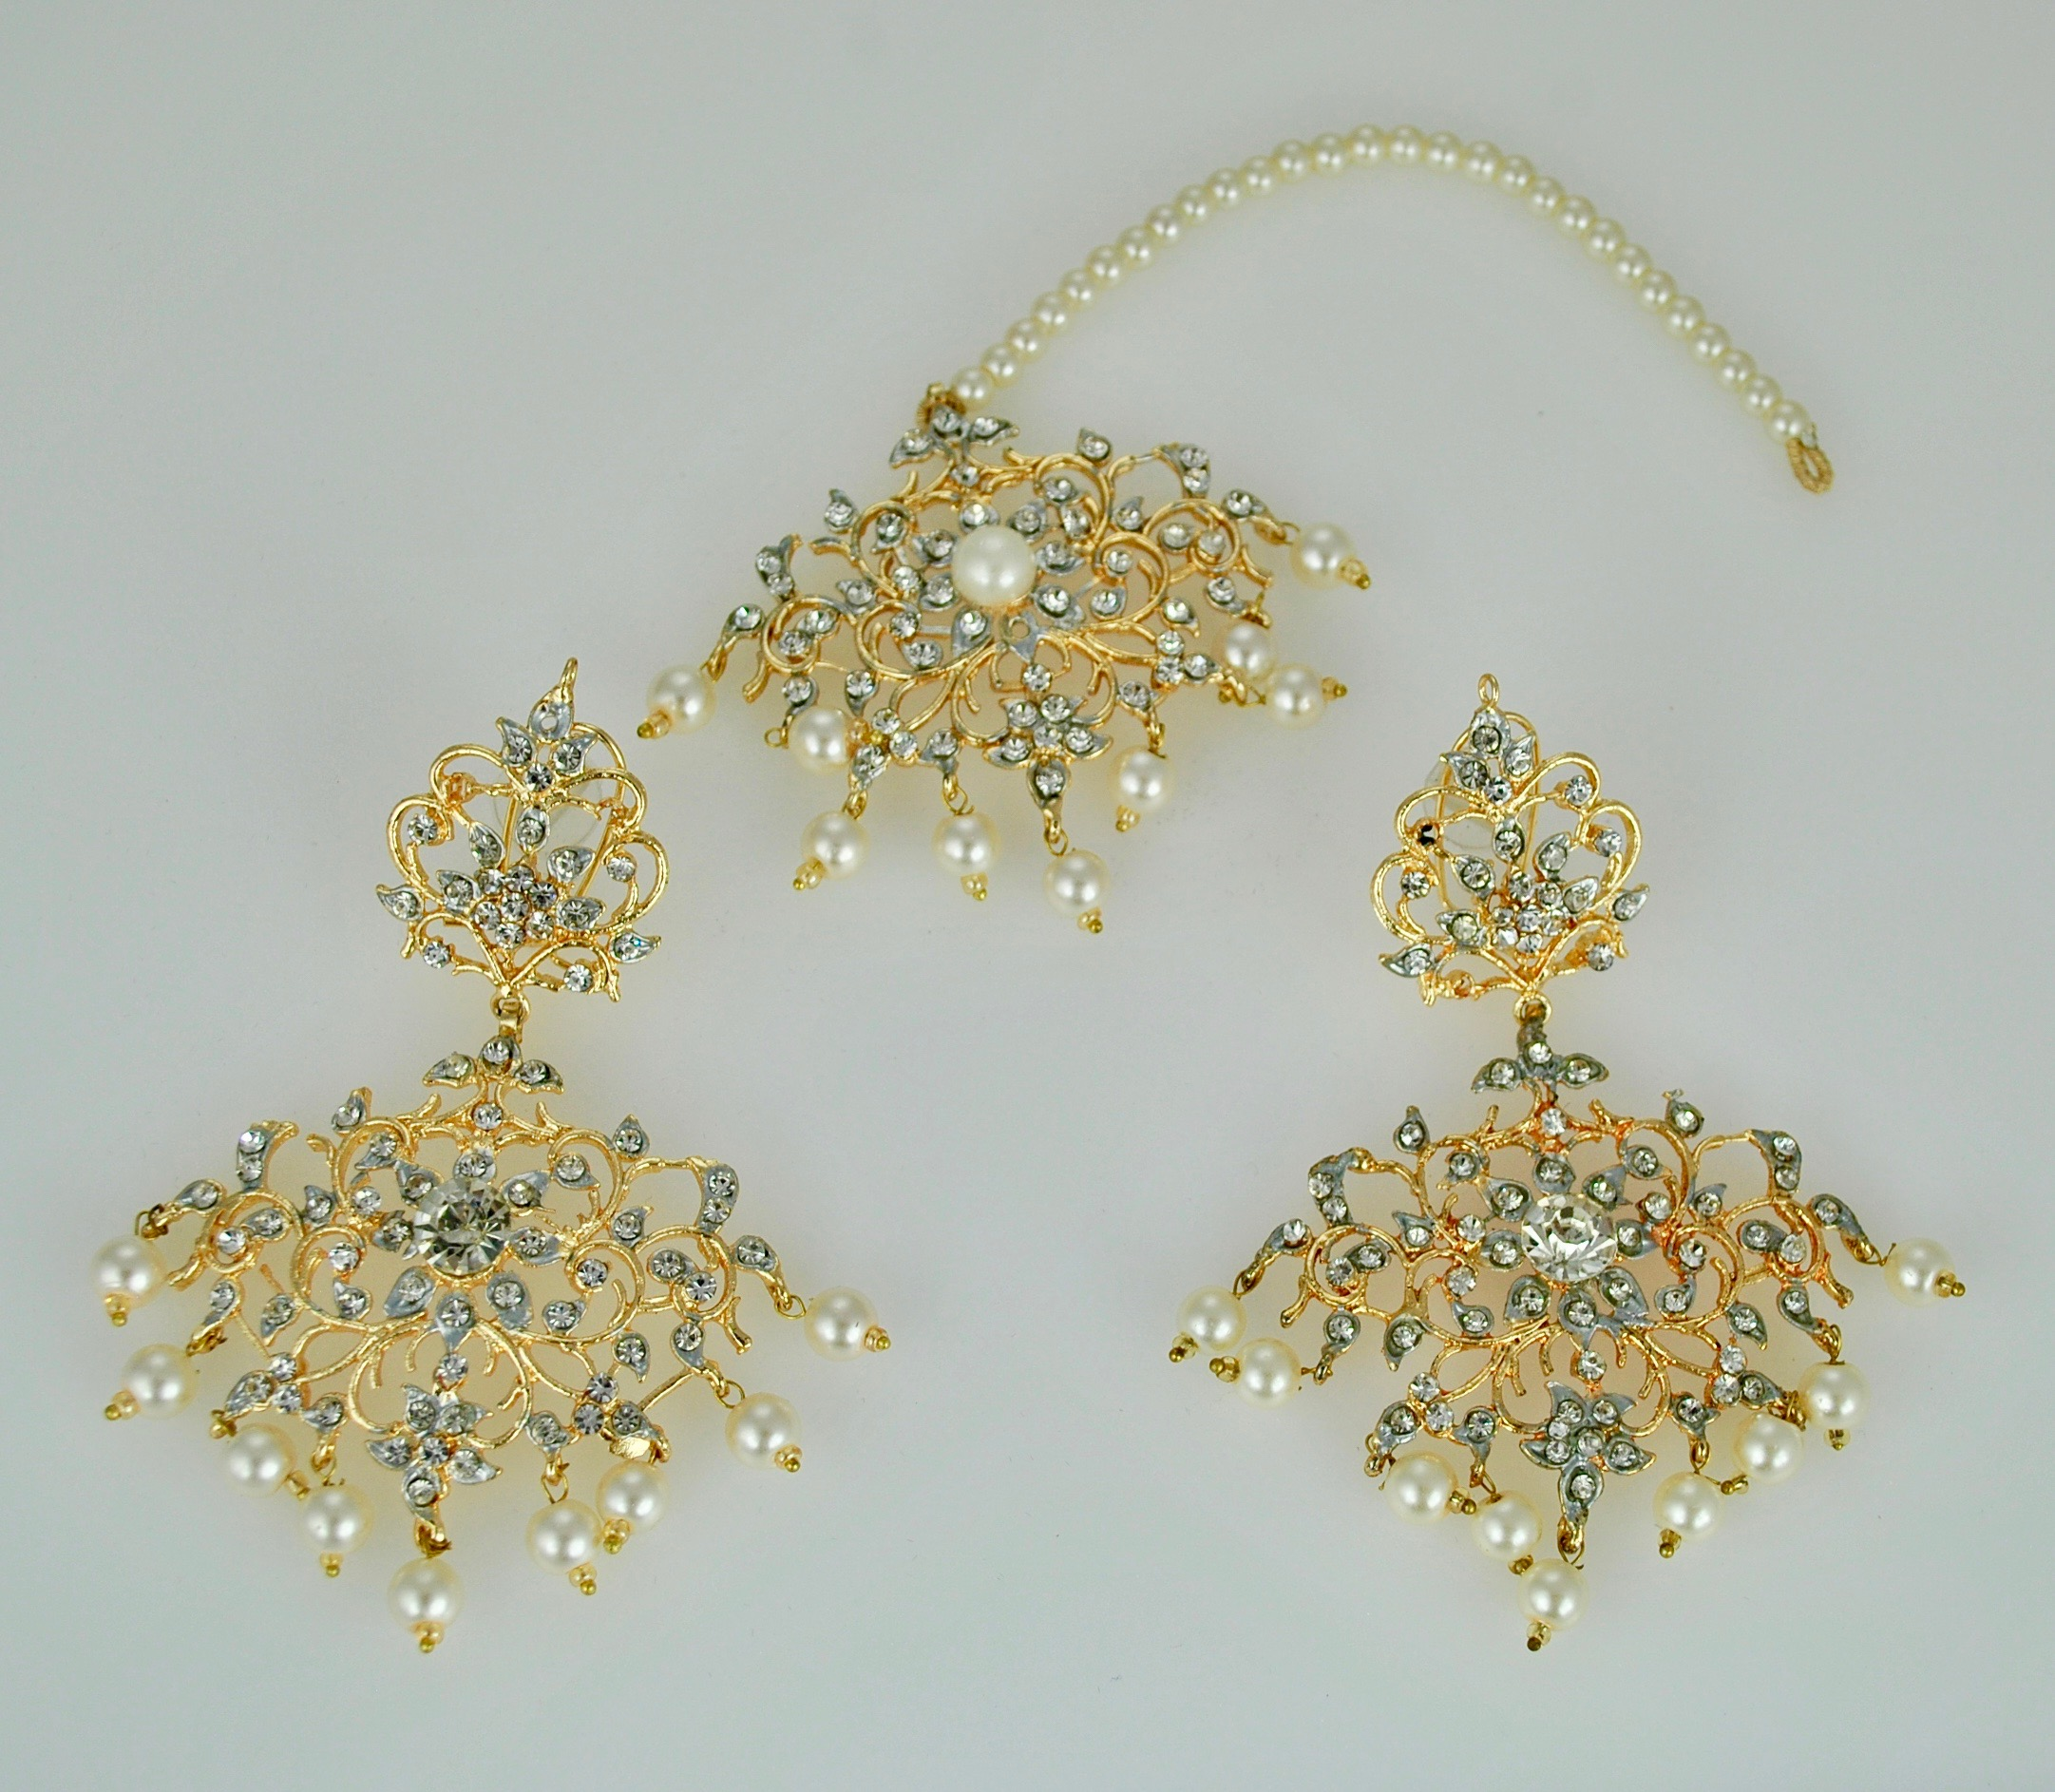 Silver and Gold earrings and tikka set in 22k gold vermeil